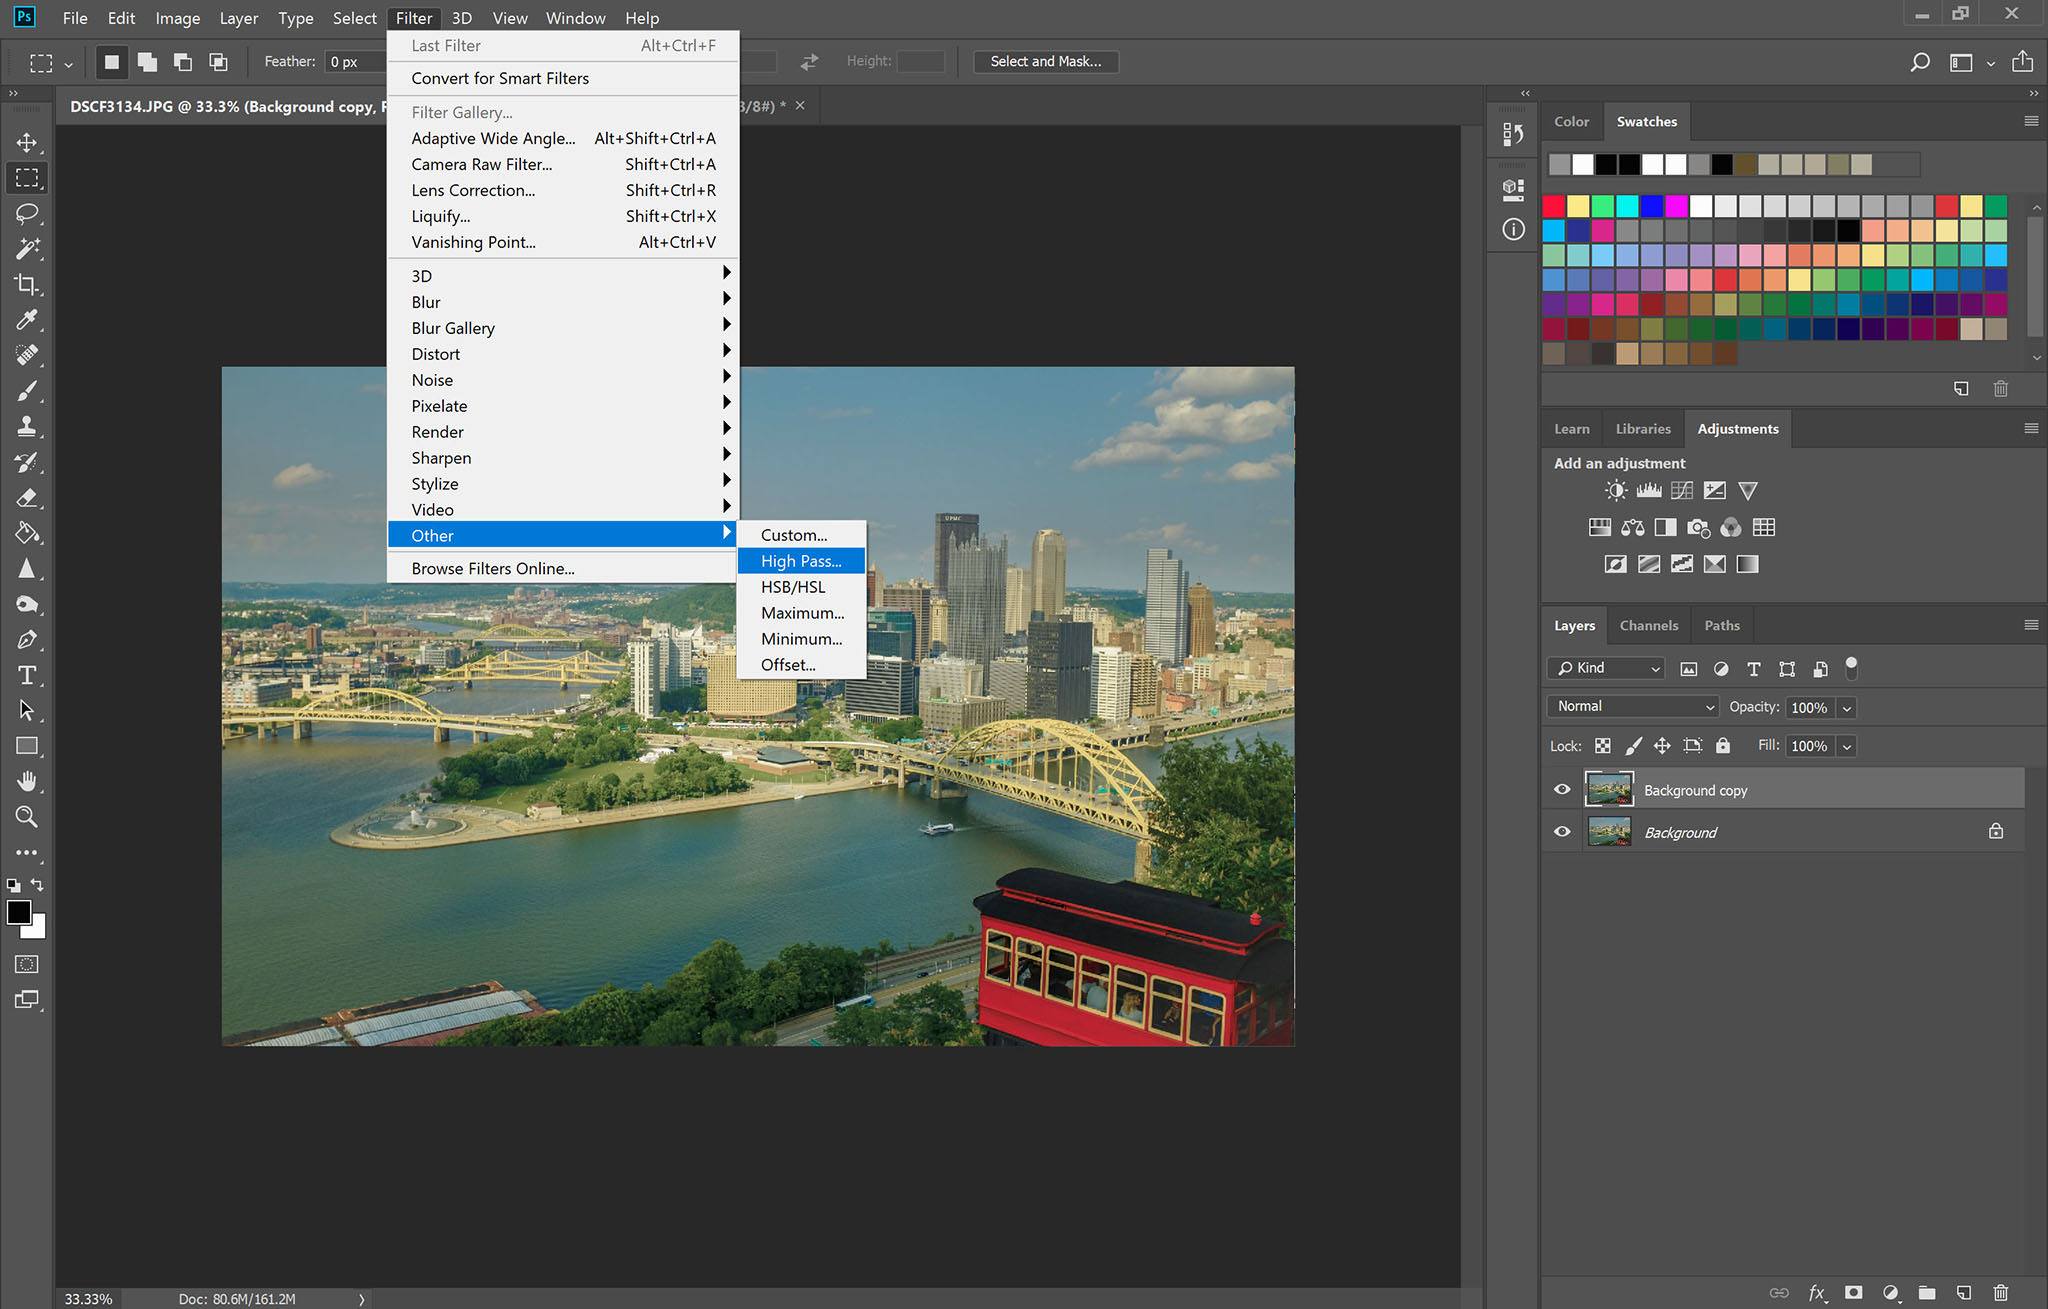 Using the High Pass Filter for Image Sharpening in Adobe